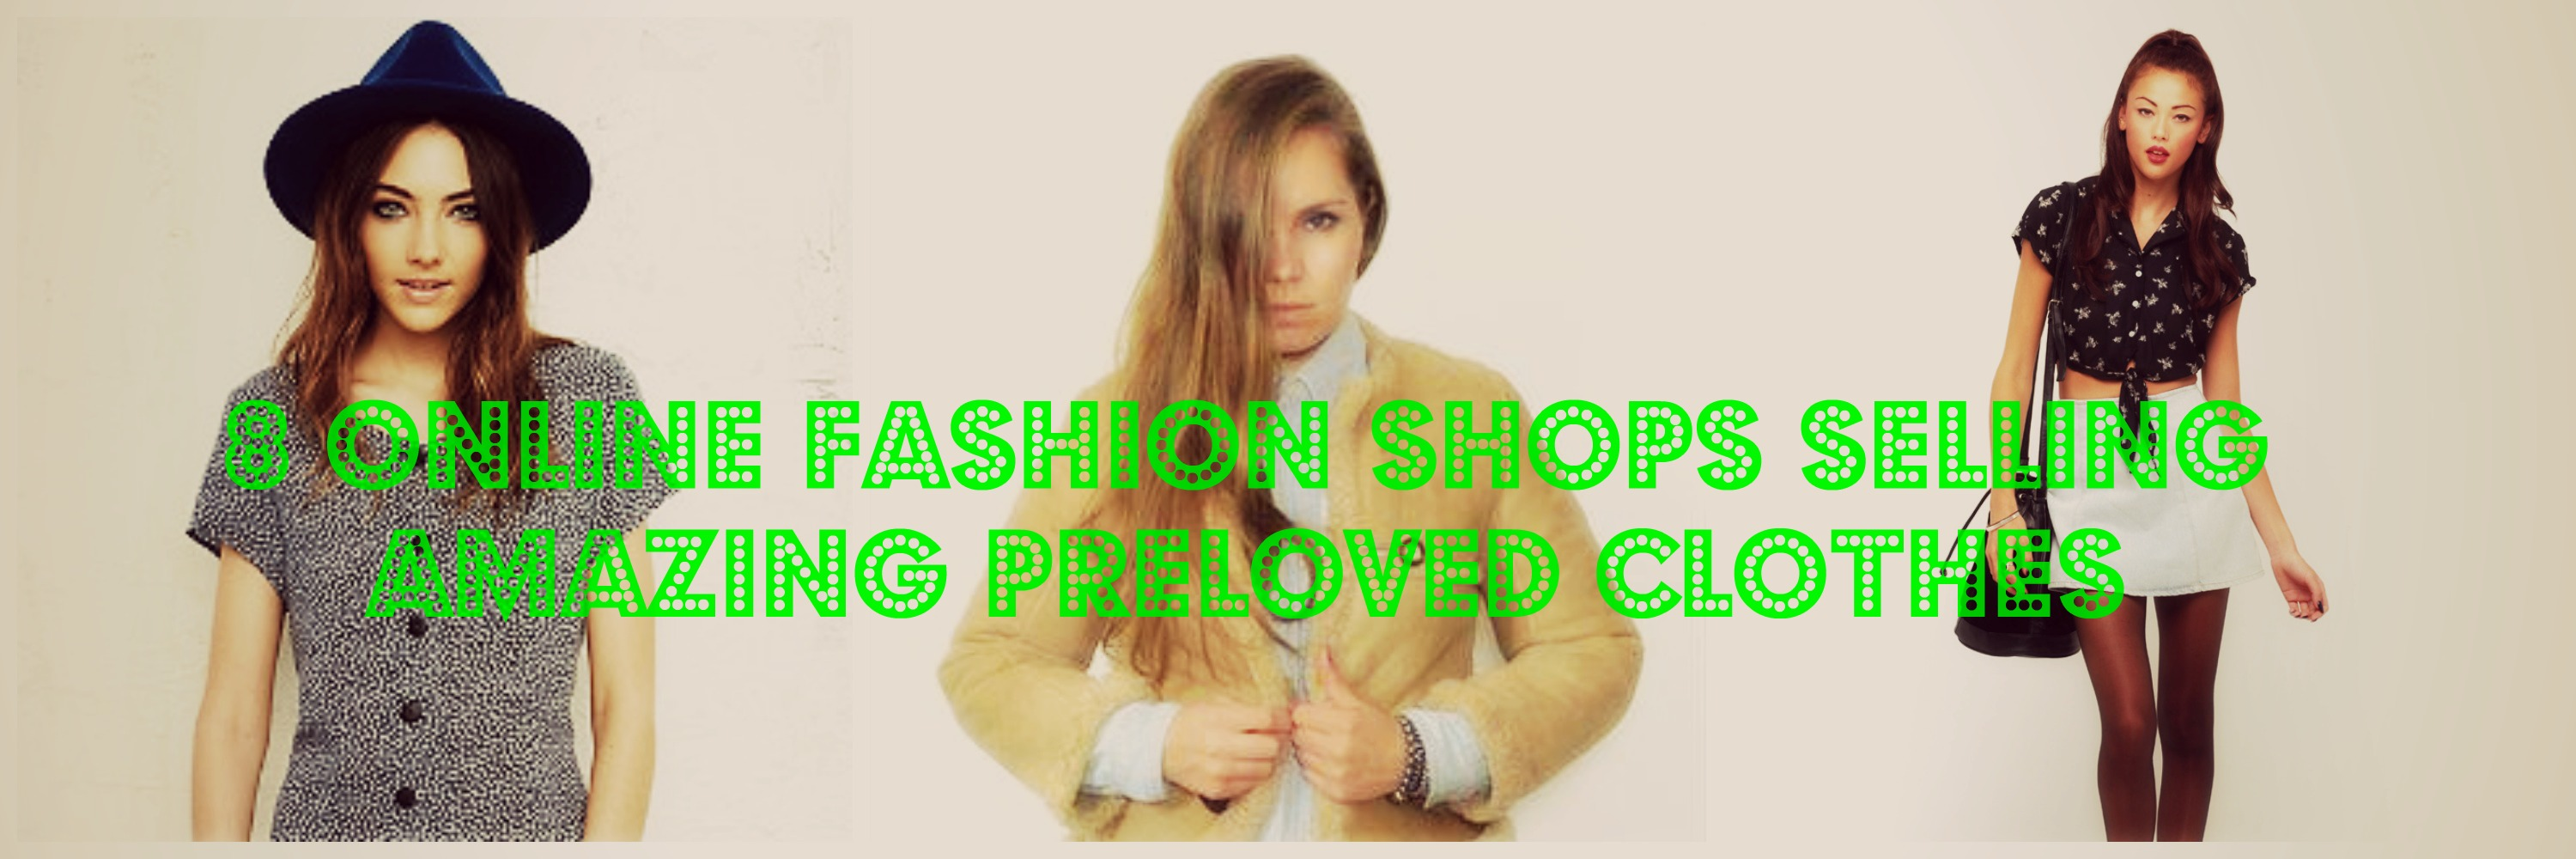 onlinefashionshops1 8 Online Fashion Shops Selling Amazing Preloved Clothes